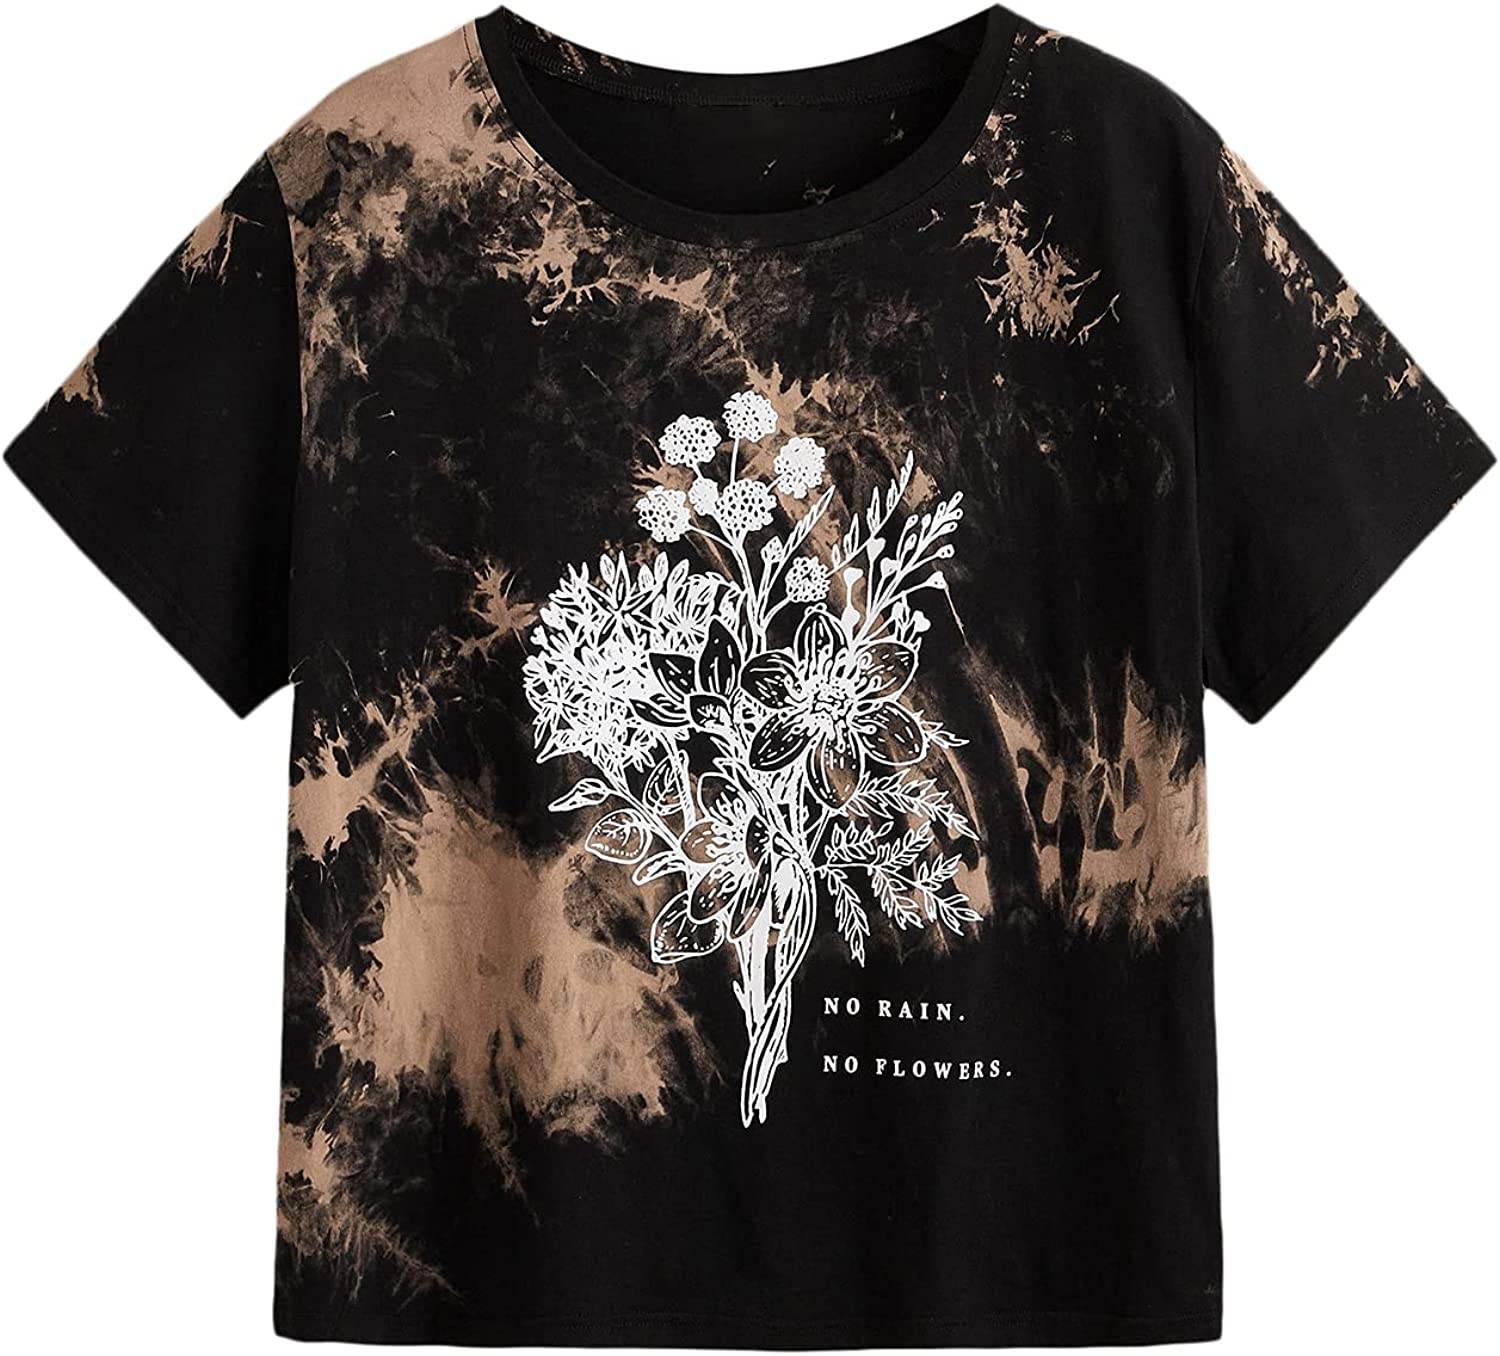 Milumia Women's Plus Size Casual Tie Dye Floral Graphic Short Sleeve Tee Shirt